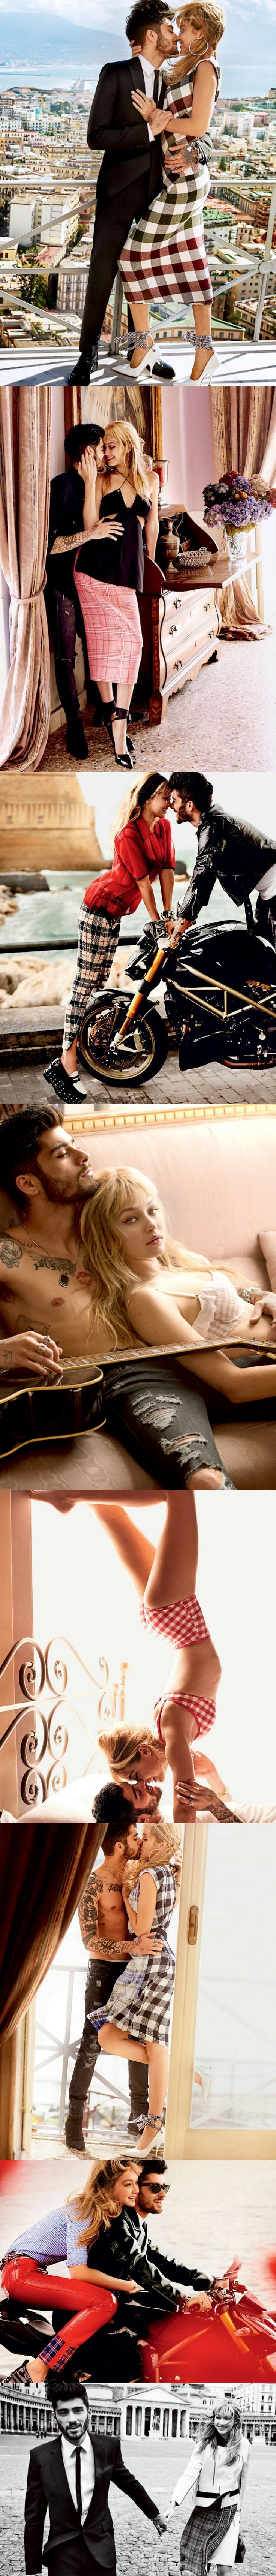 Zayn Malik and Gigi Hadid for Vogue US . Pictures - Mario Testino ©